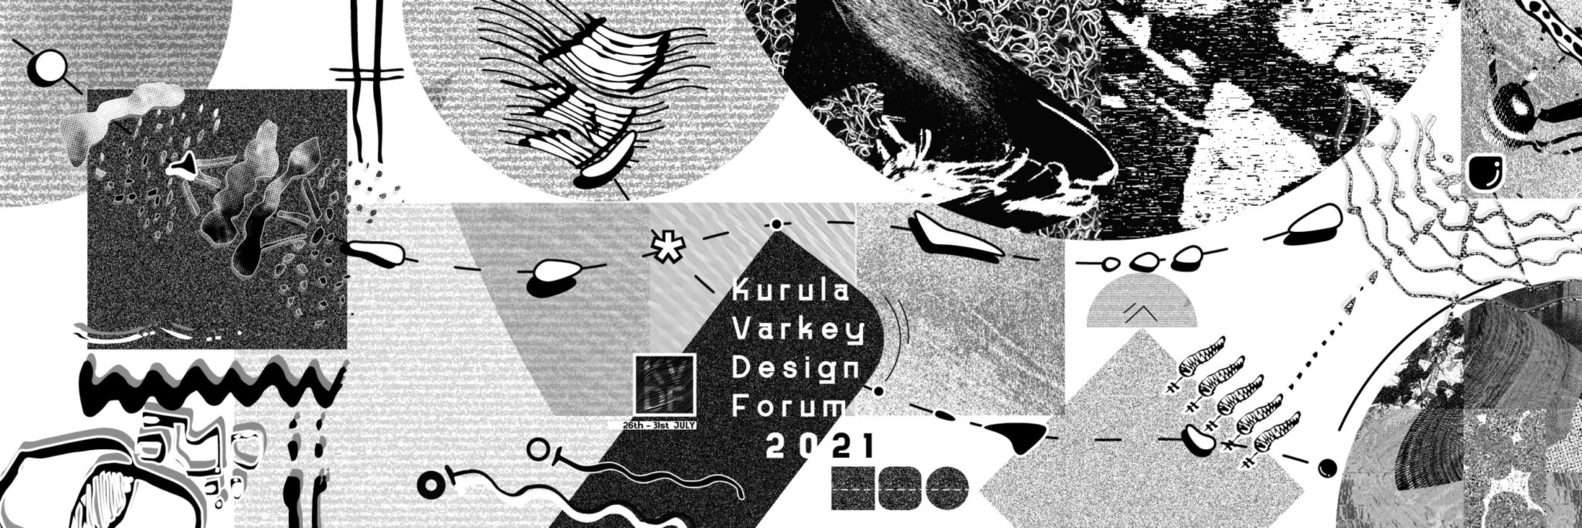 Call for Entries for Kurula Varkey Design Forum: Final year student projects